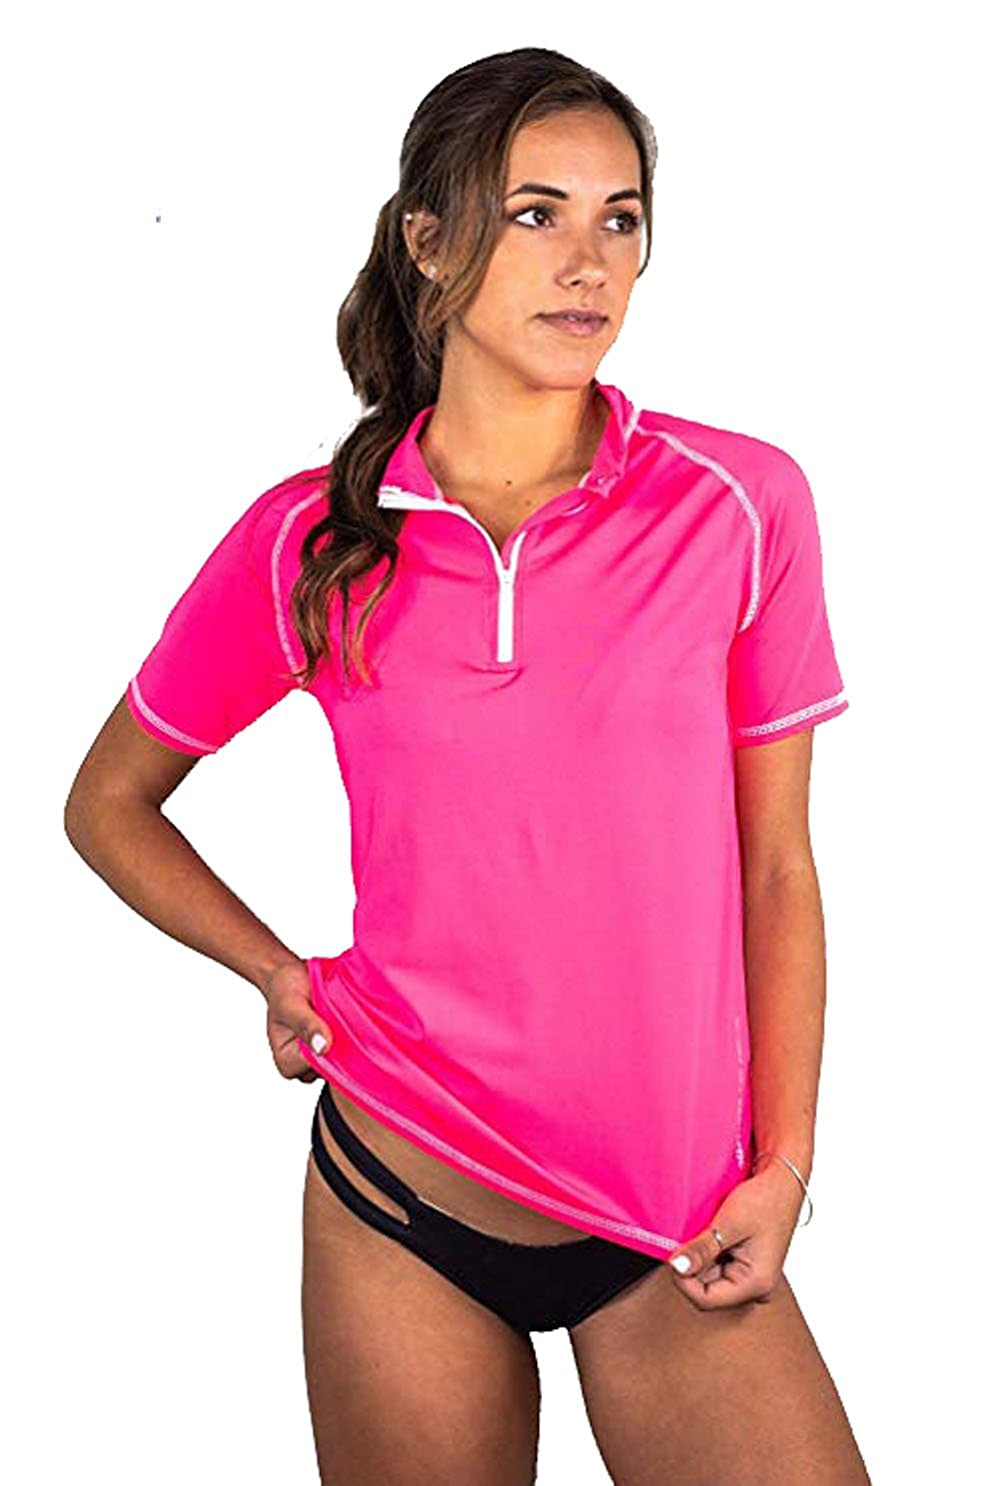 086b2bfe873b9 NO SWEAT, NO CHILL – QUICK DRY, BREATHABLE, LIGHTWEIGHT BLEND: Sweat  wicking, quick drying polyester and spandex swim shirts for women keep you  tempered, ...